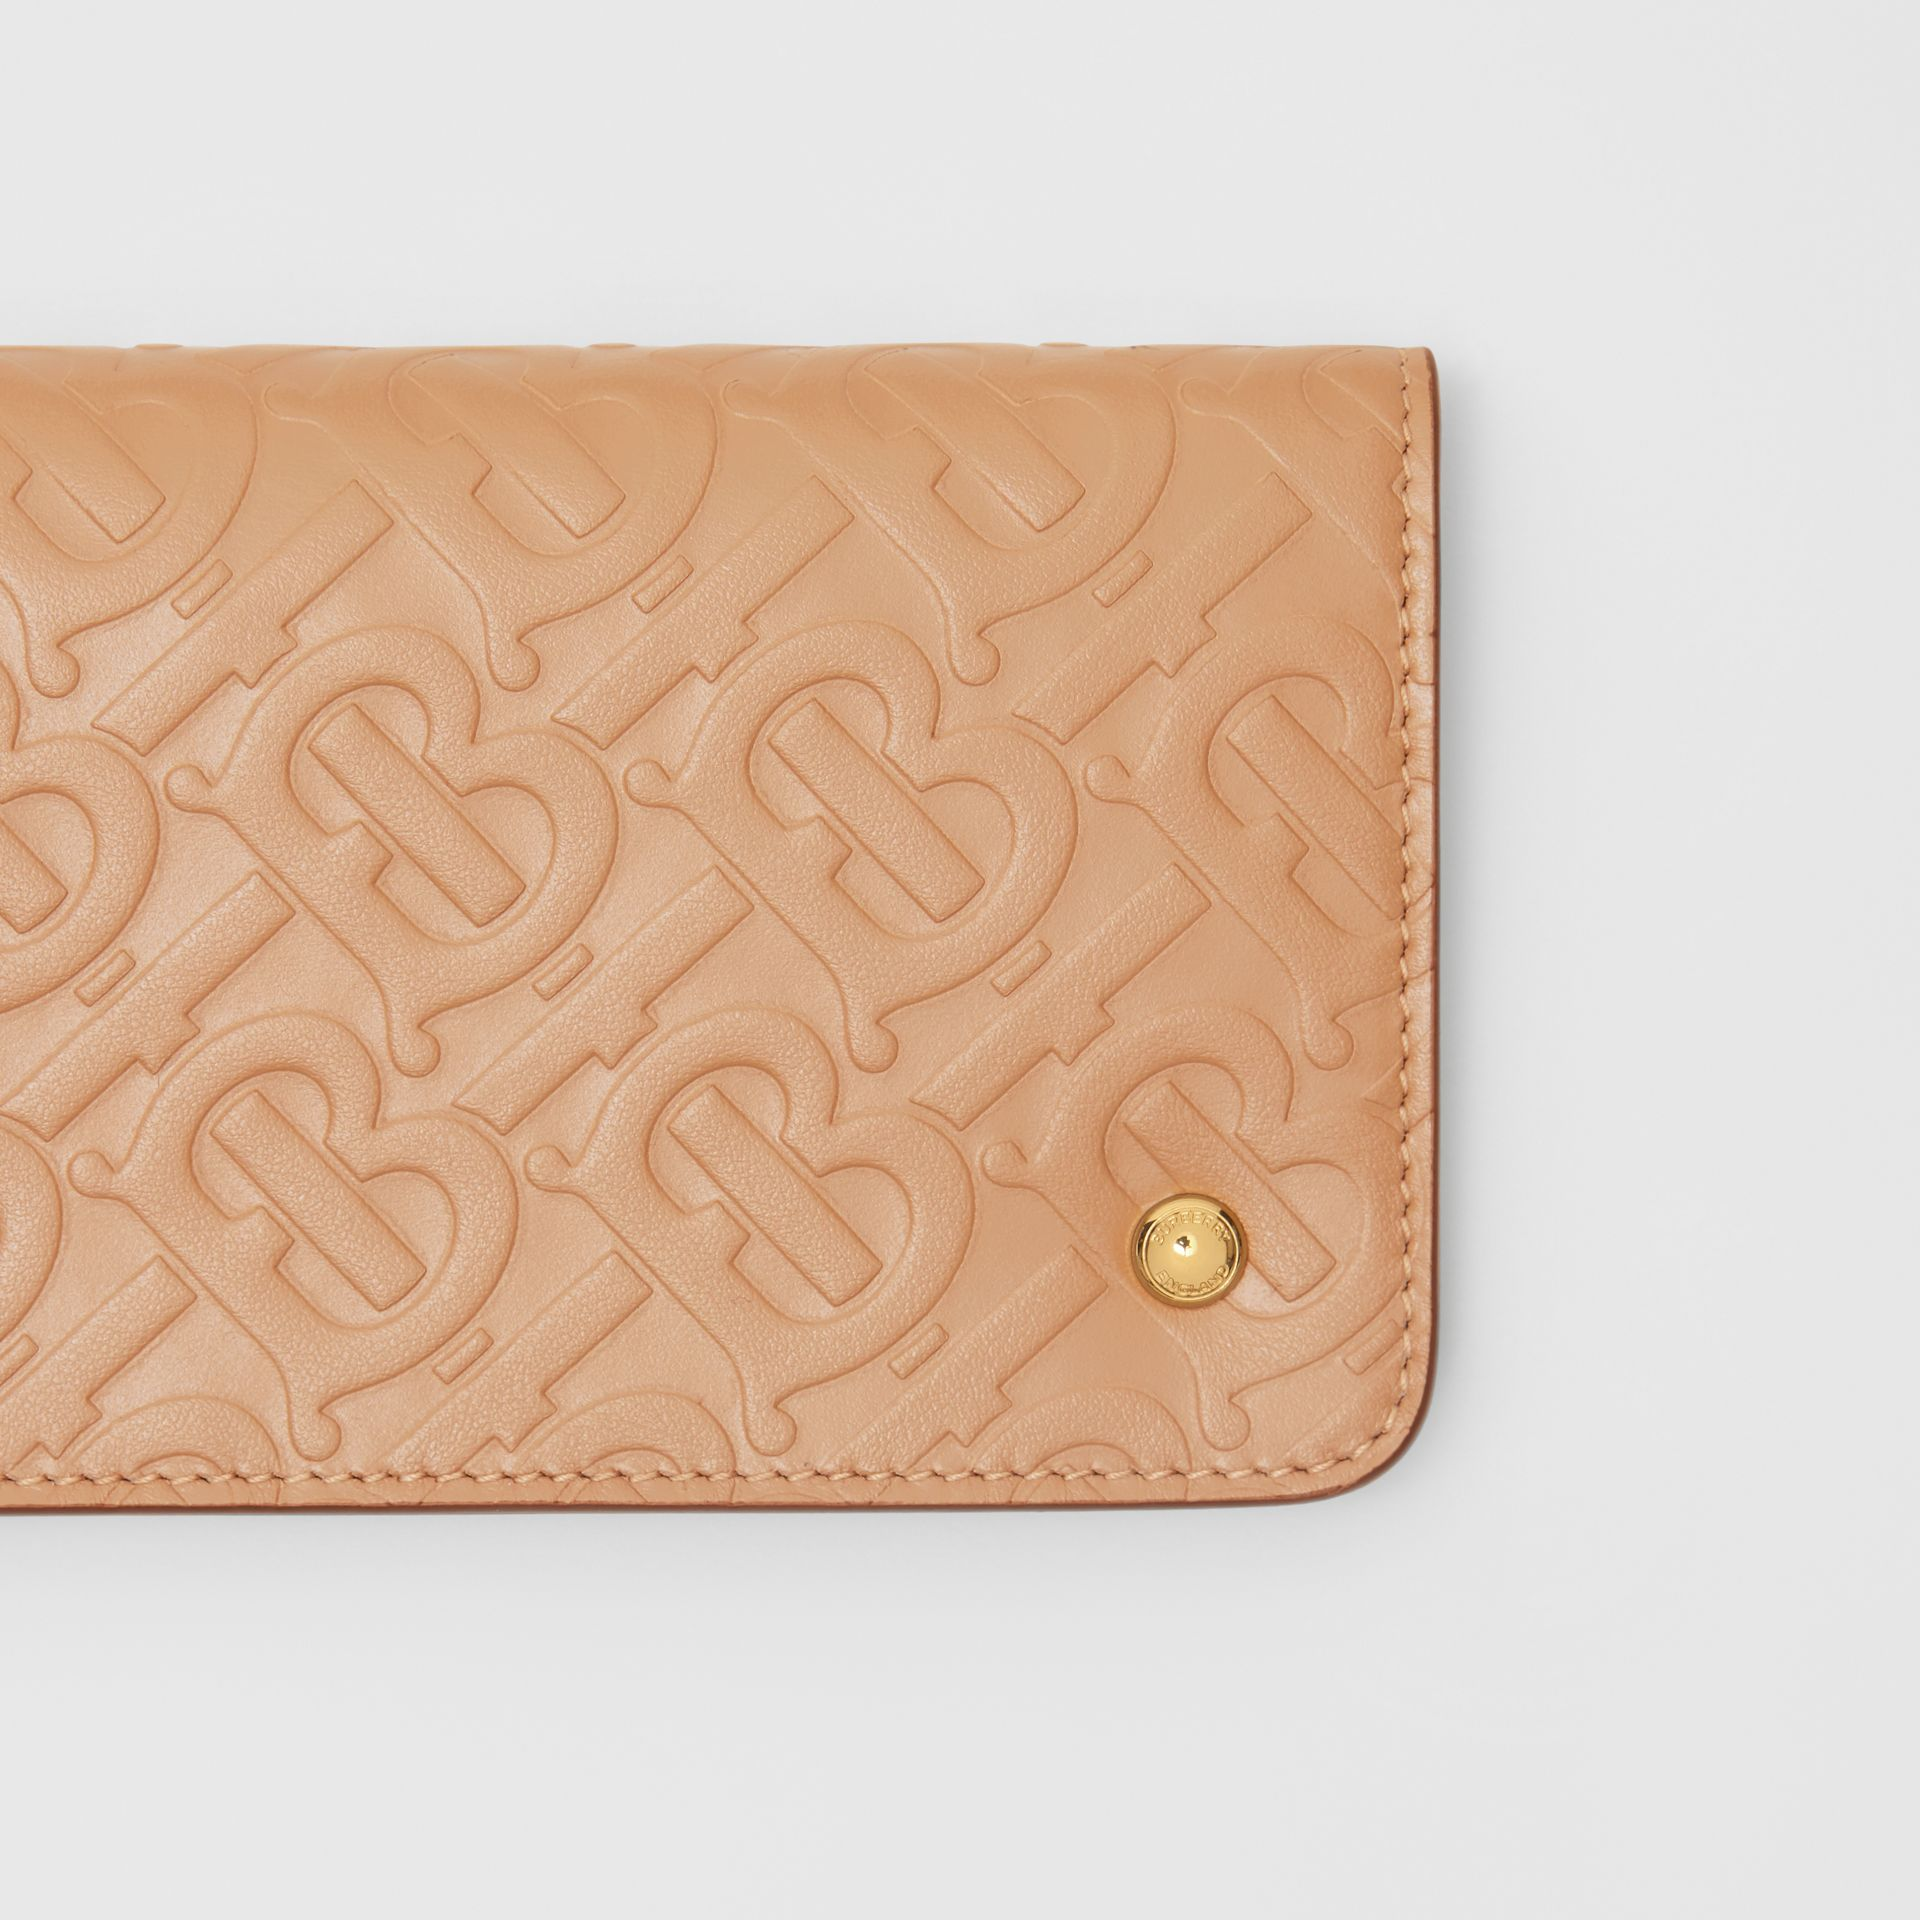 Monogram Leather Phone Wallet in Light Camel | Burberry - gallery image 1